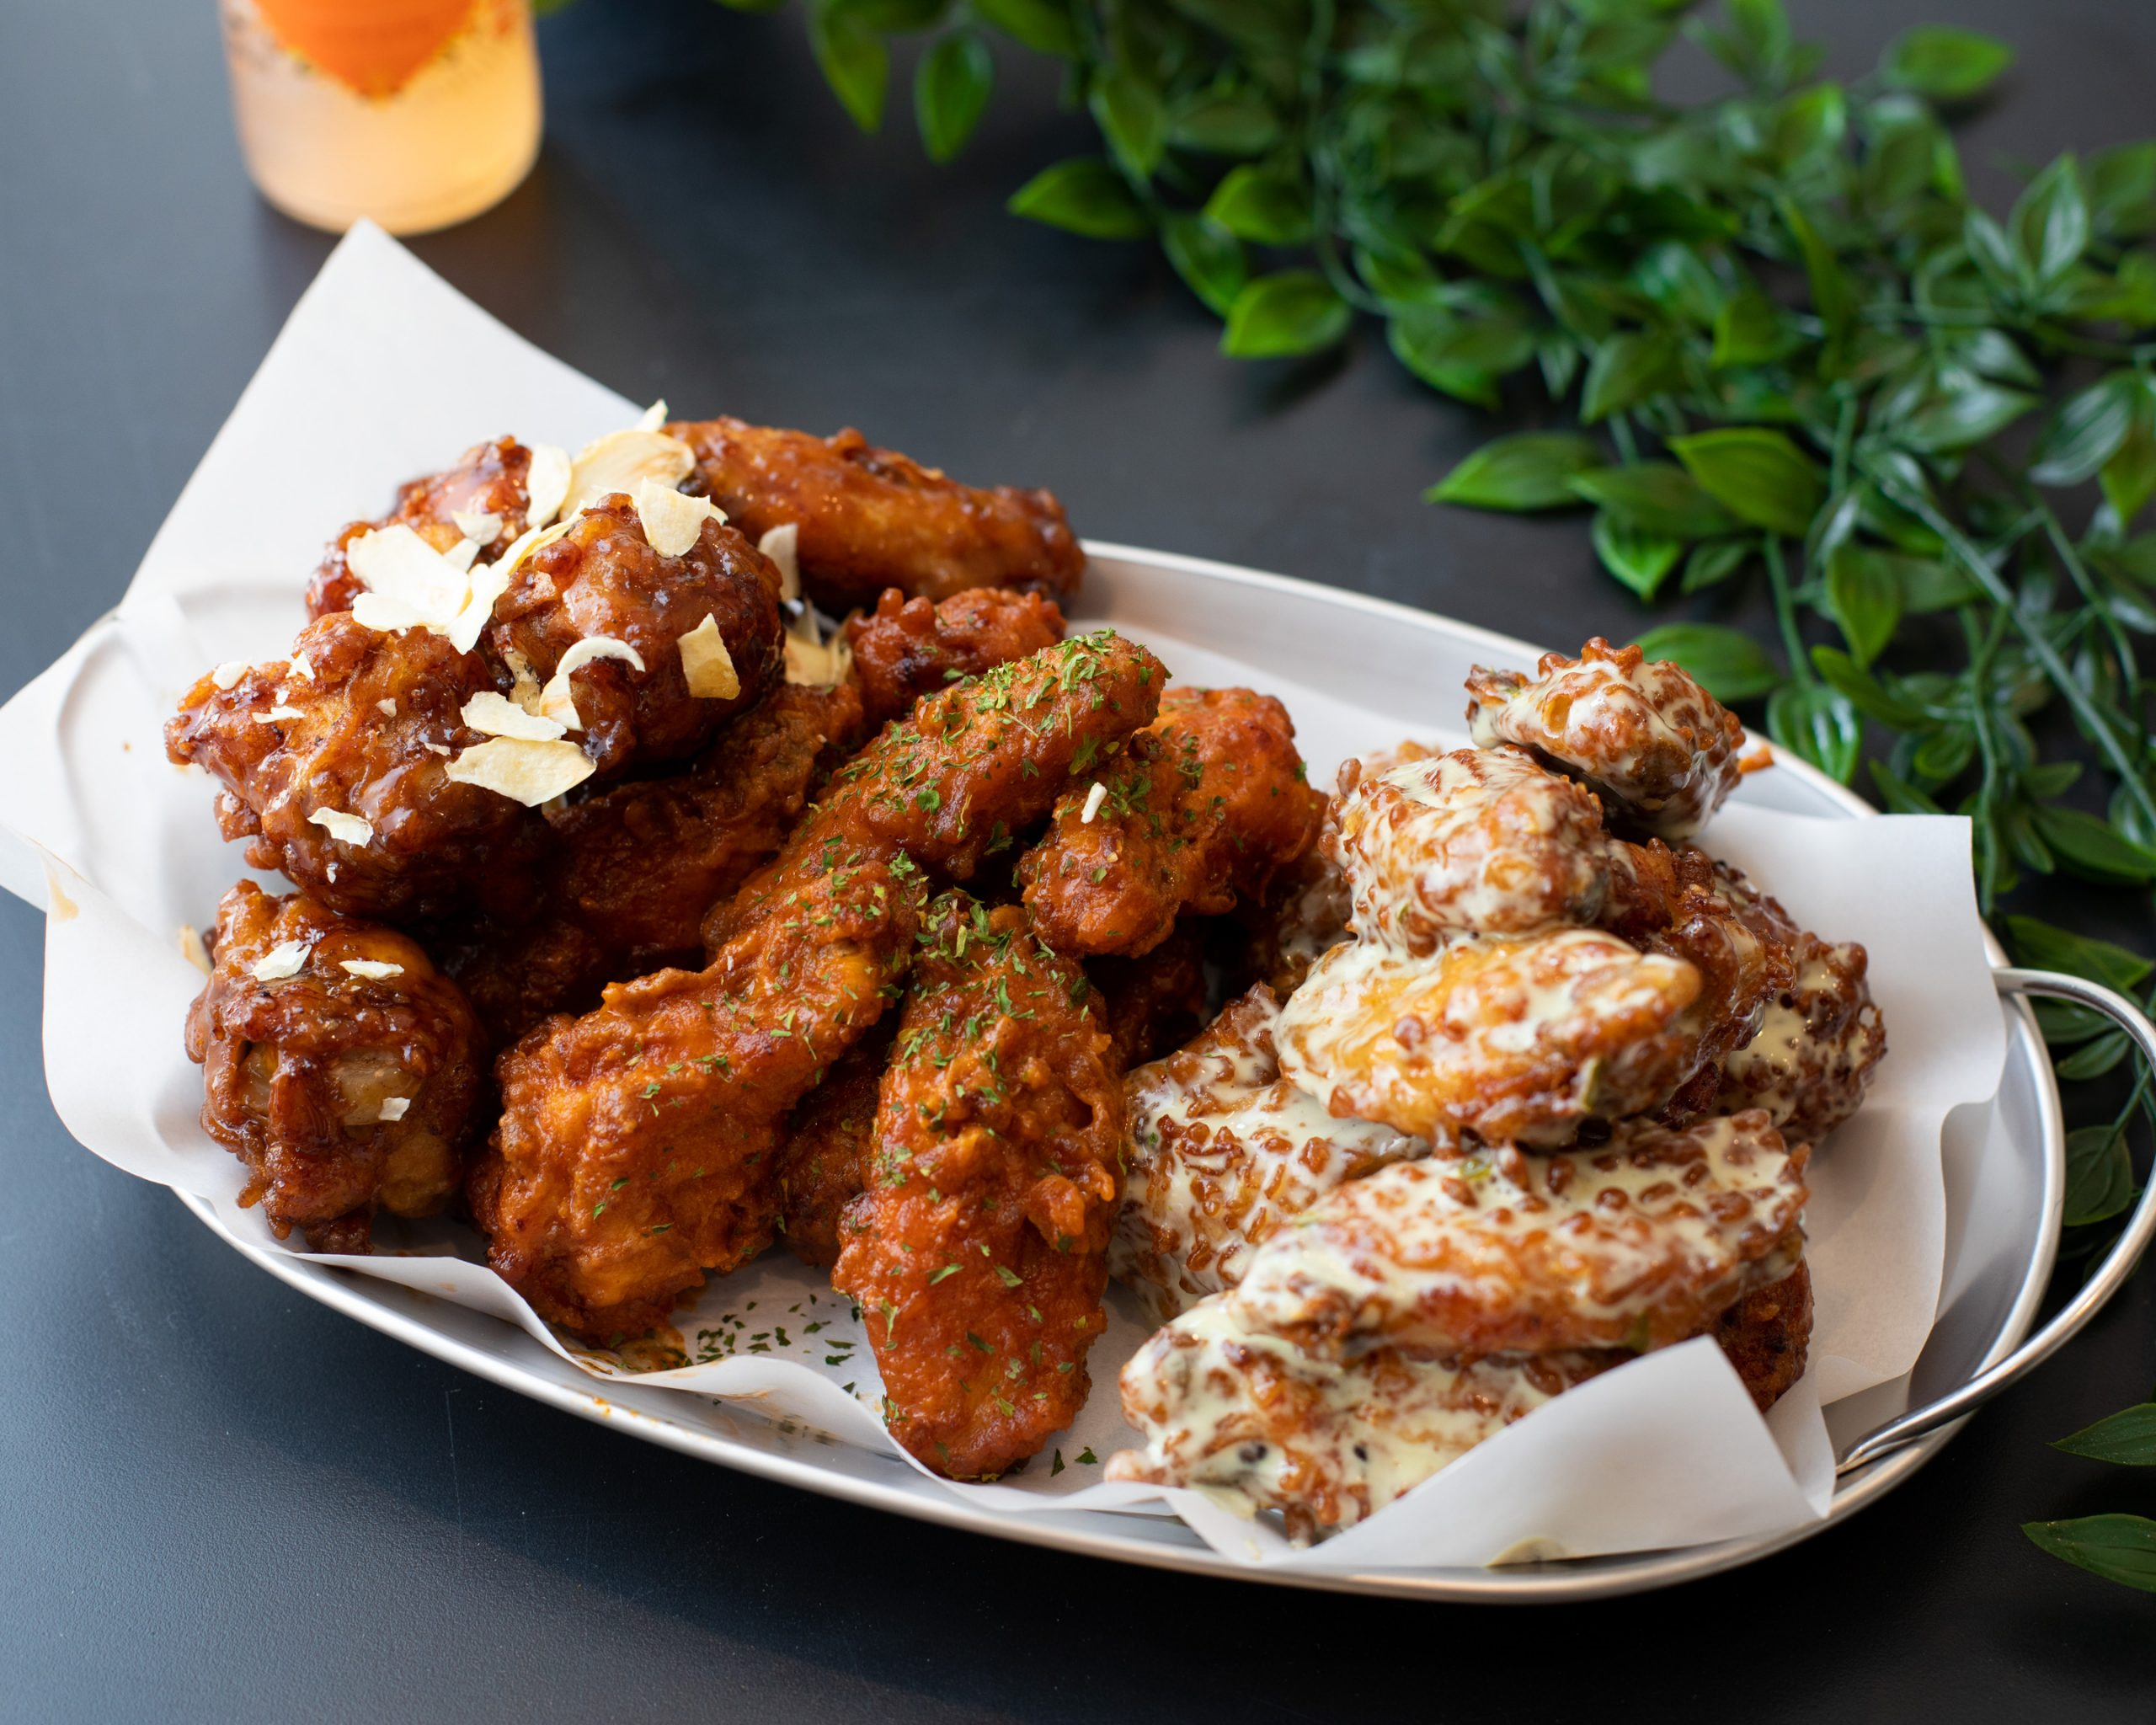 buffalowings bestwings brisbanebest wings kfc korean chicken american delivery goodfood